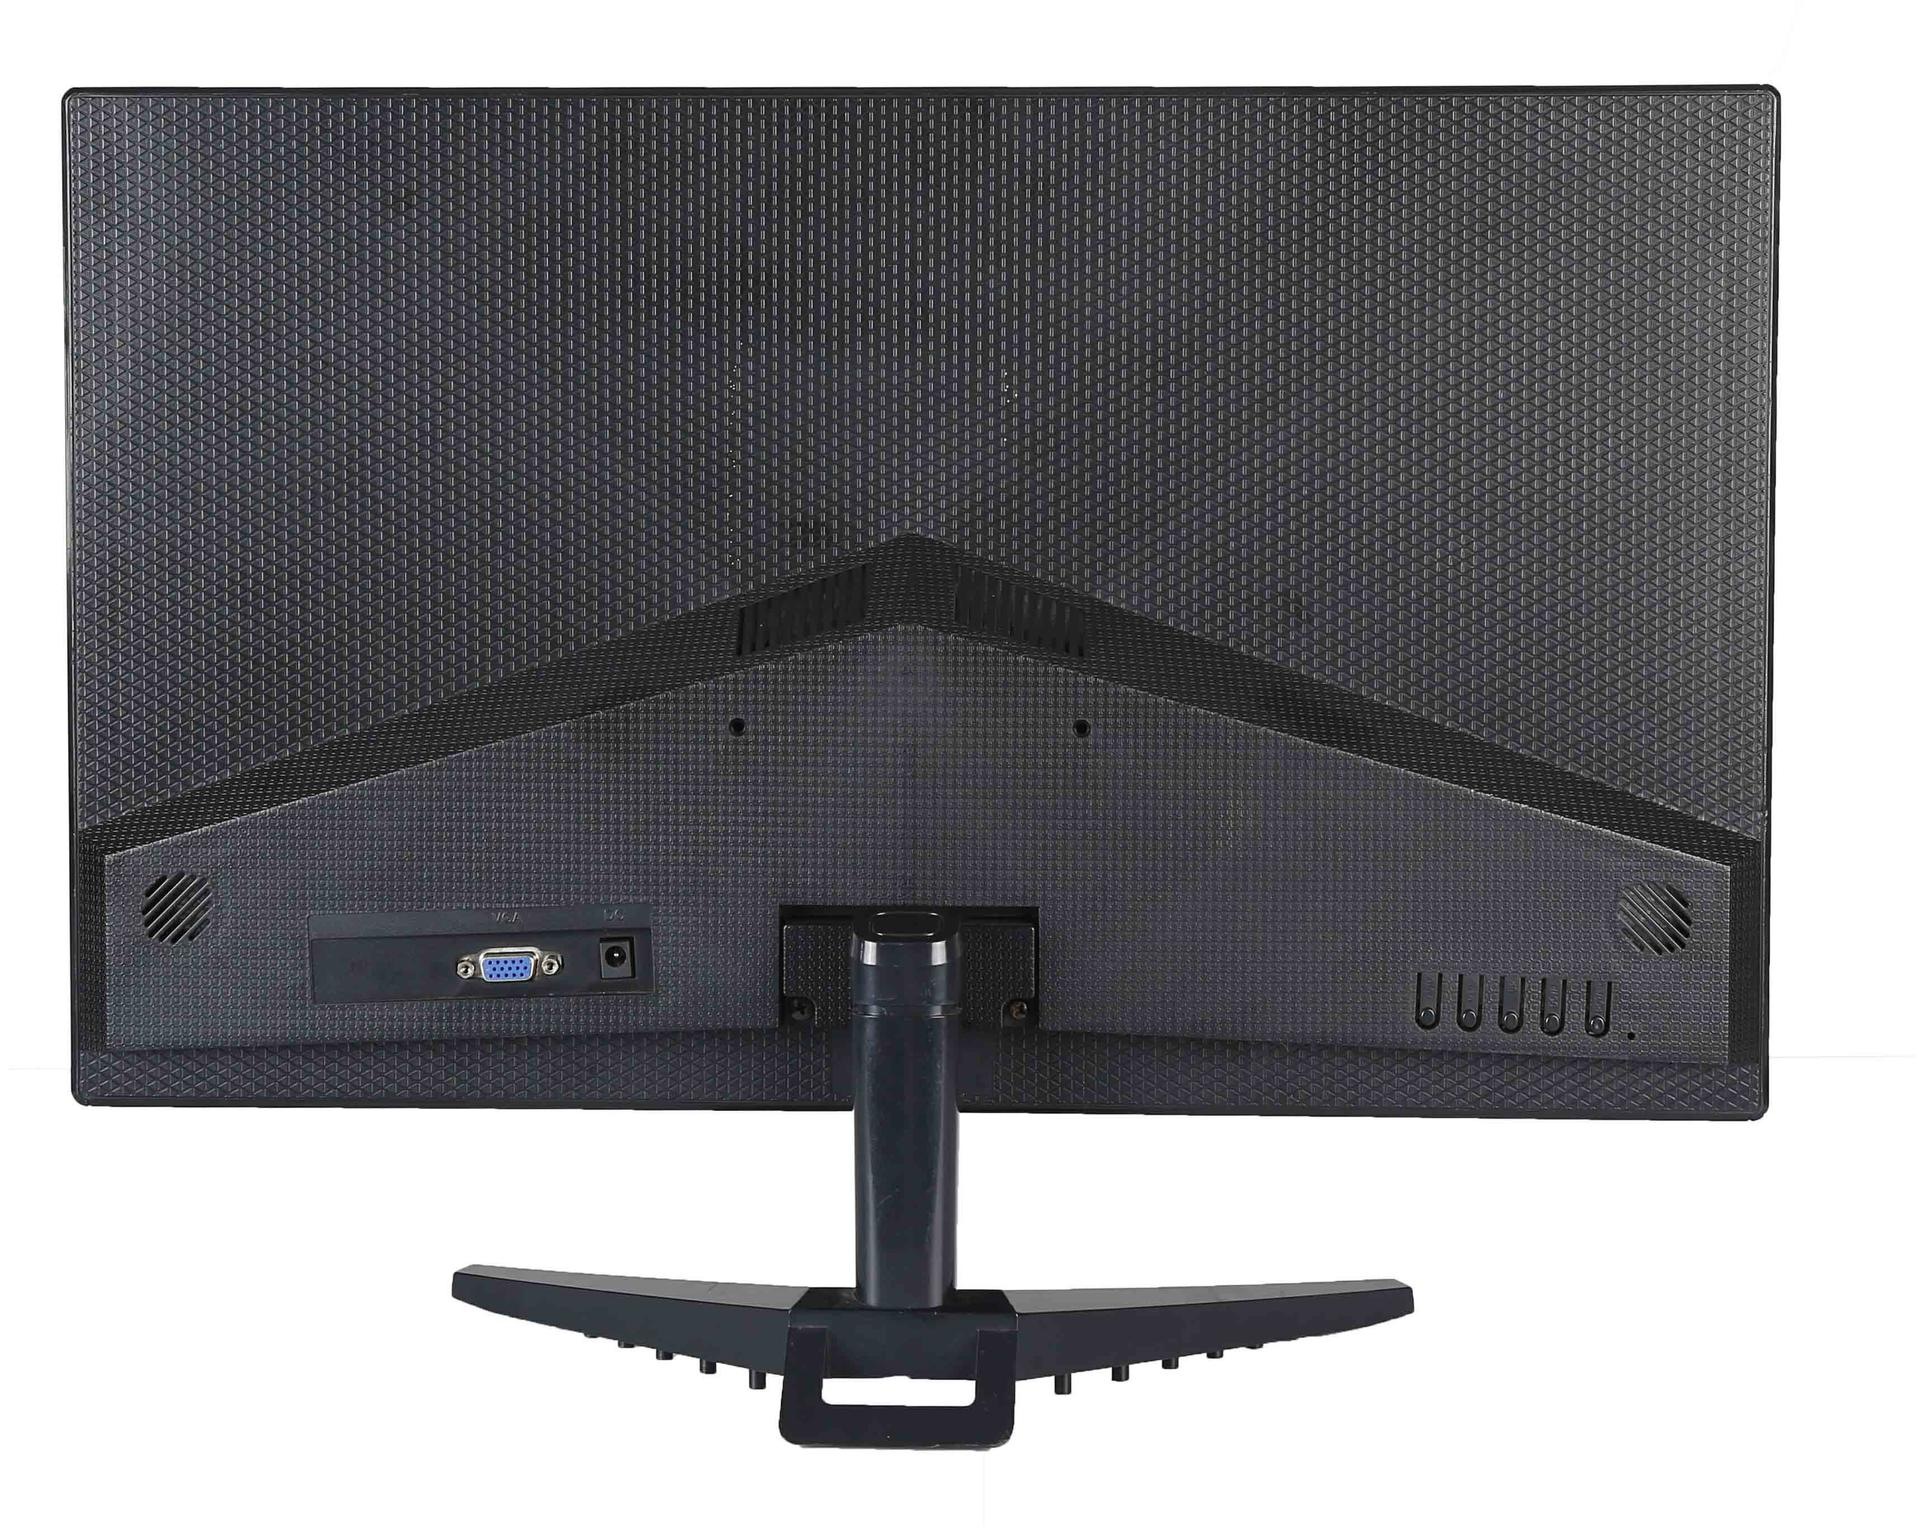 OEM brand 1080P LED PC monitor 23.6/24 inch Widescreen HDMI/VGA computer monitor